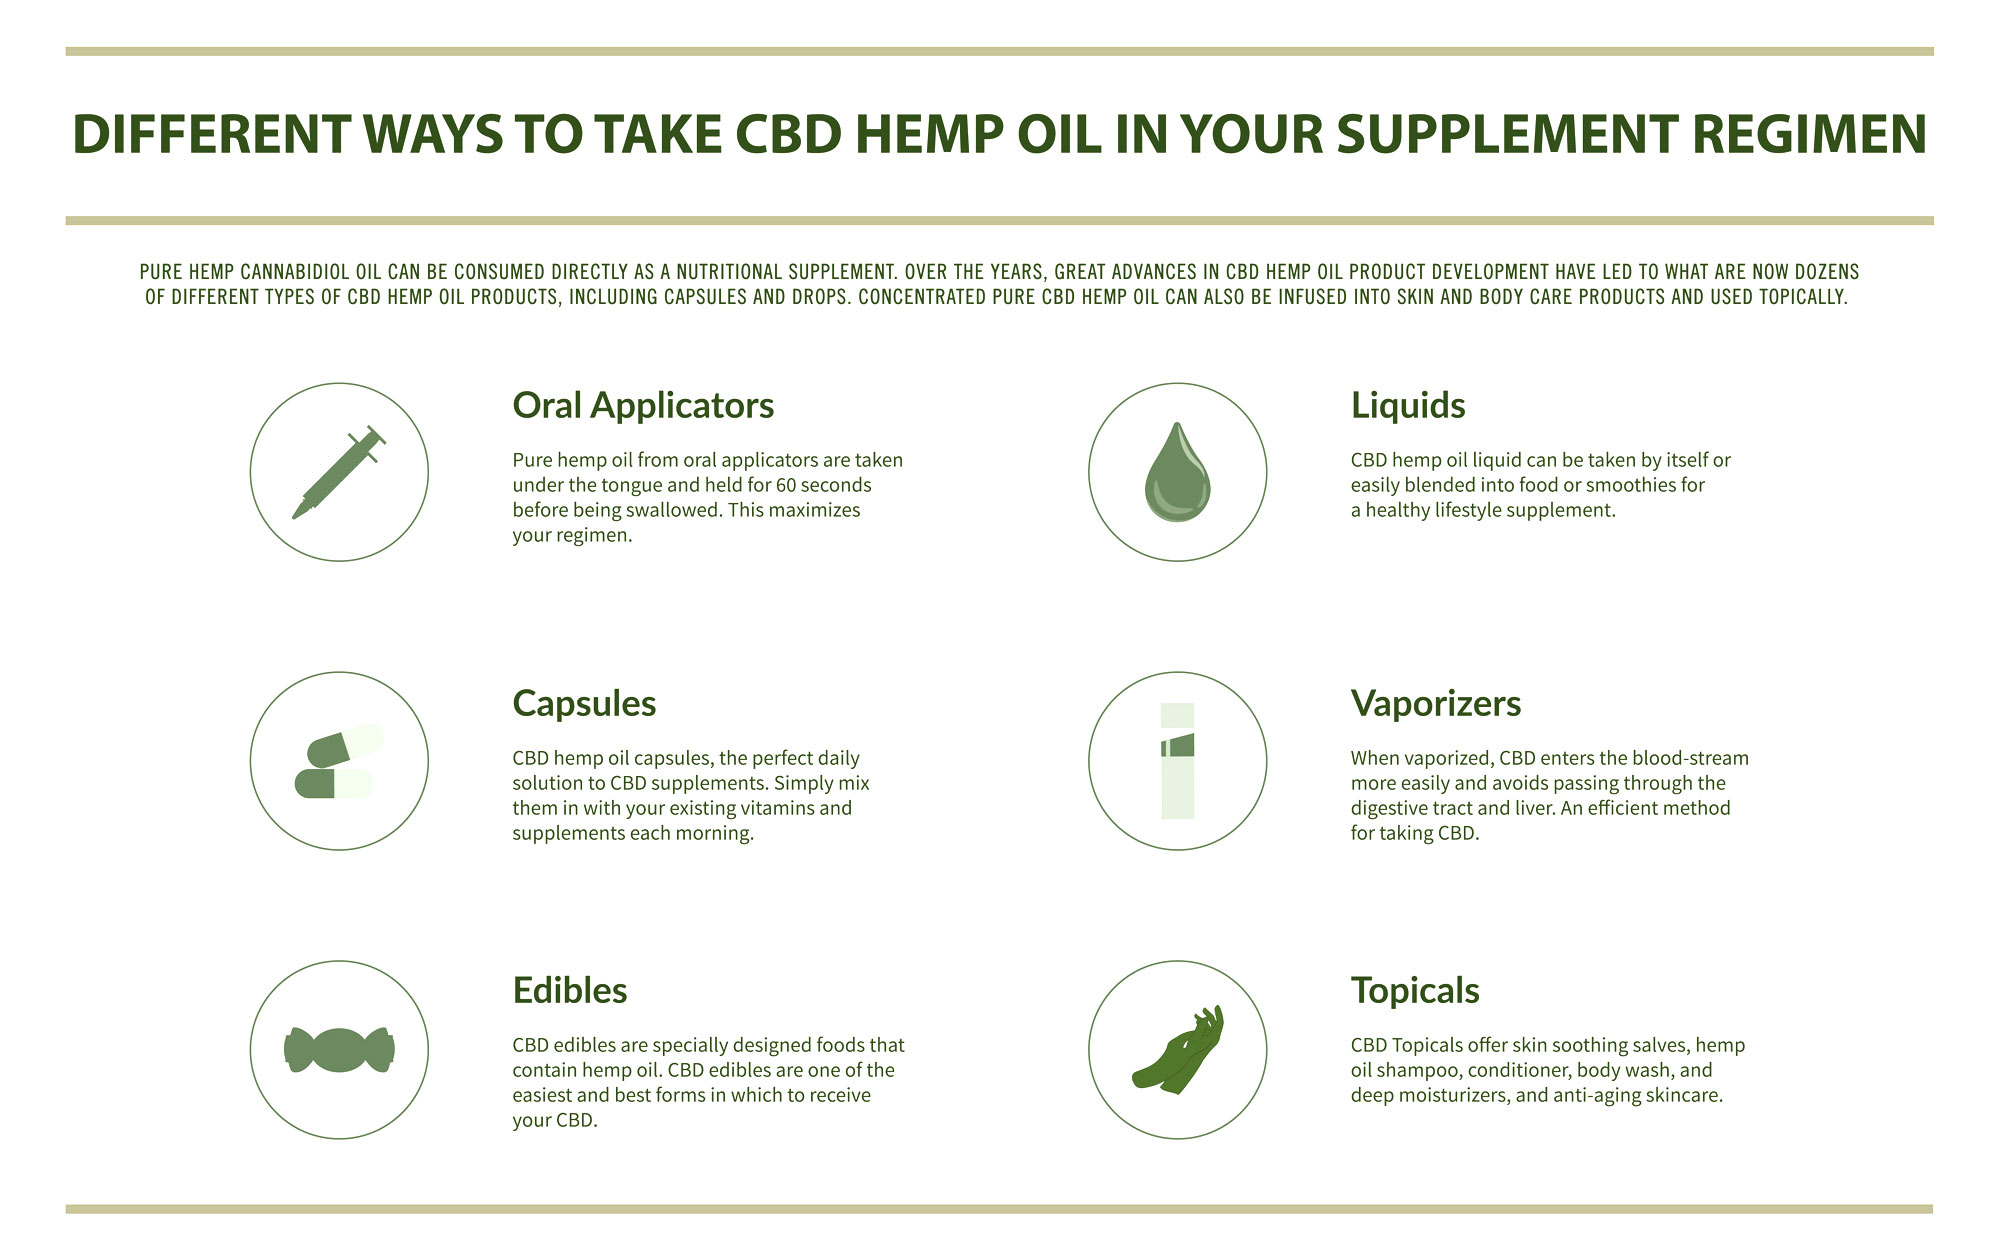 infographic illustrating the different ways to take cbd hemp oil